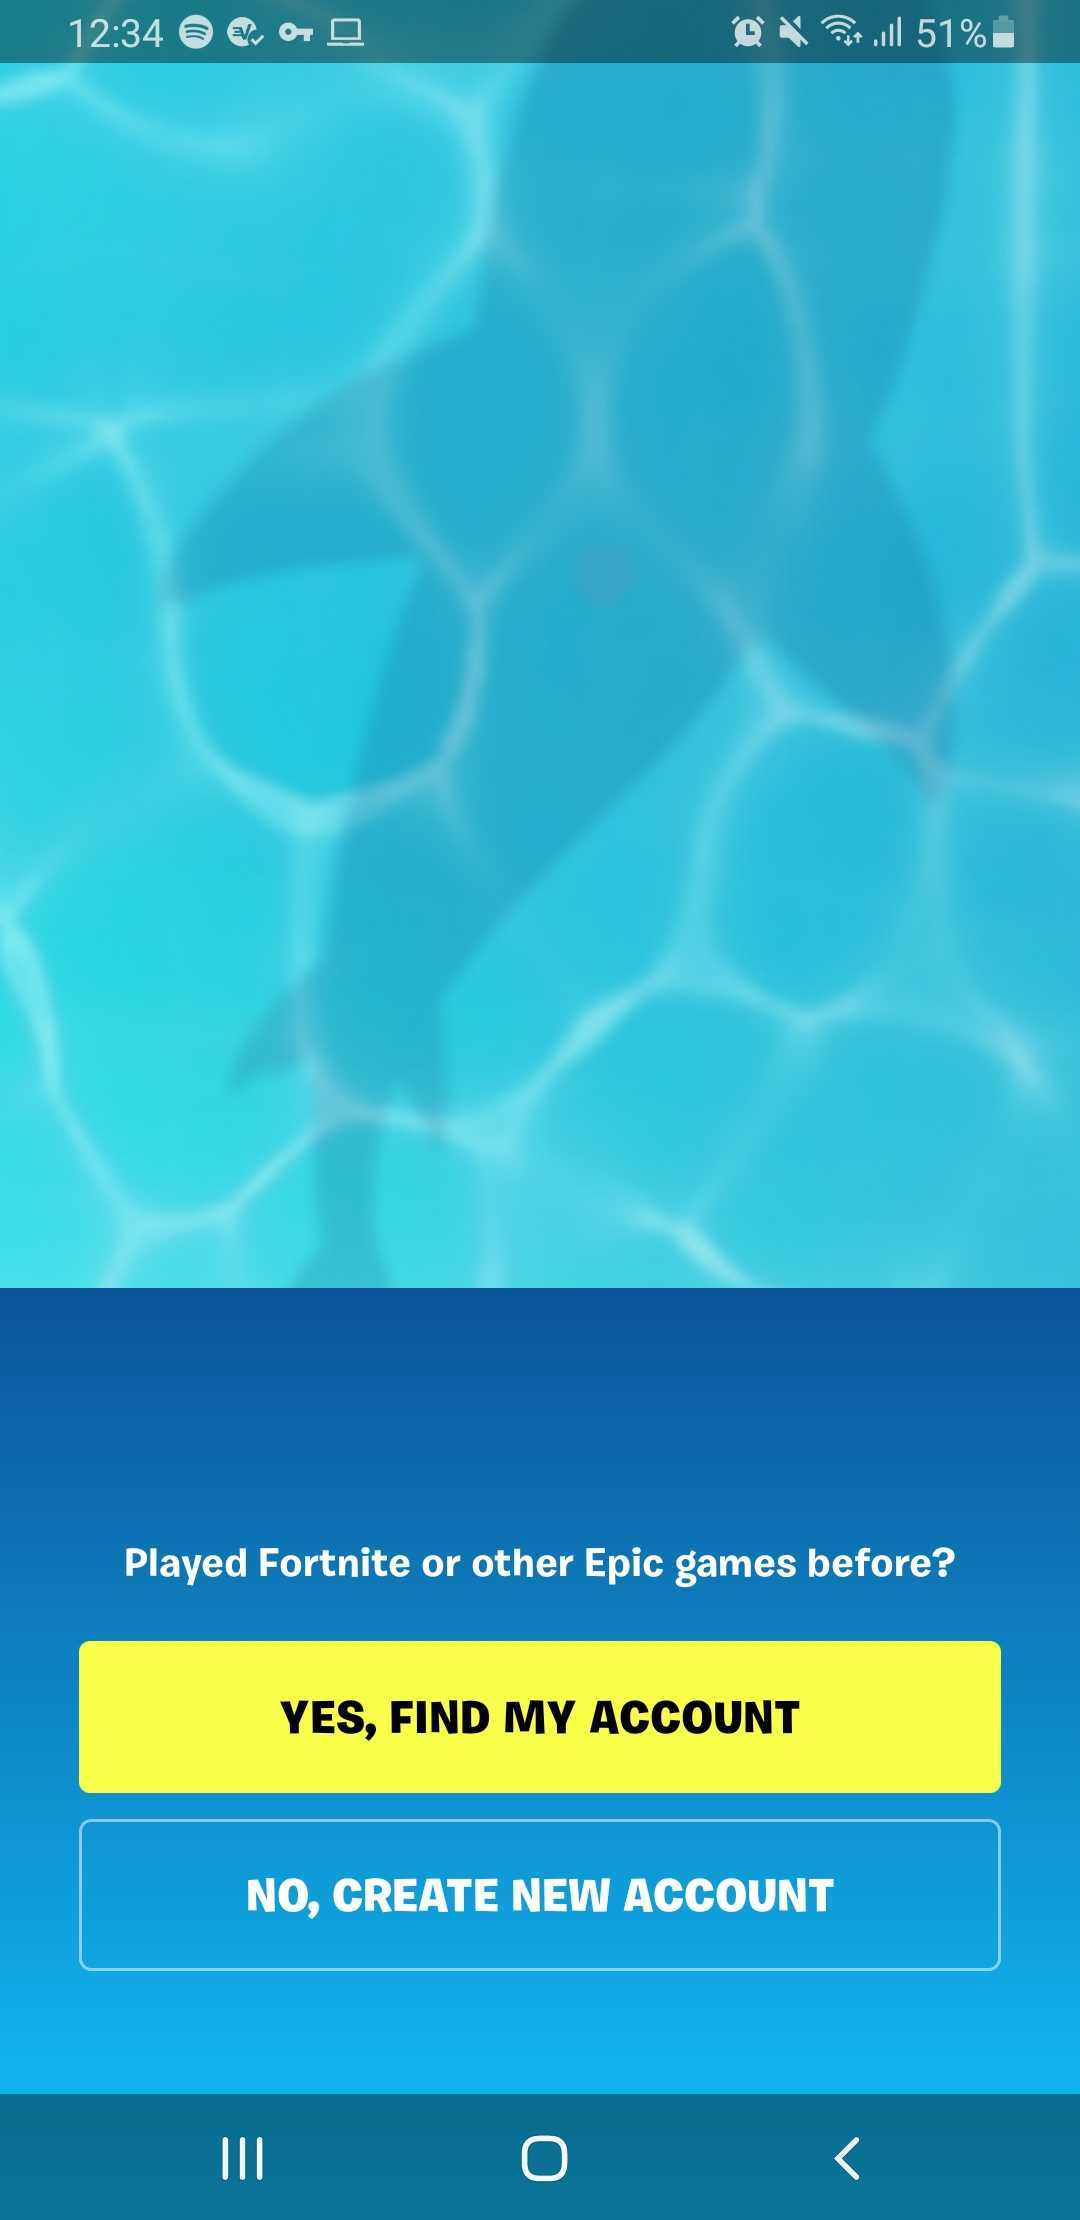 Fortnite on Android - Fortnite APK 9